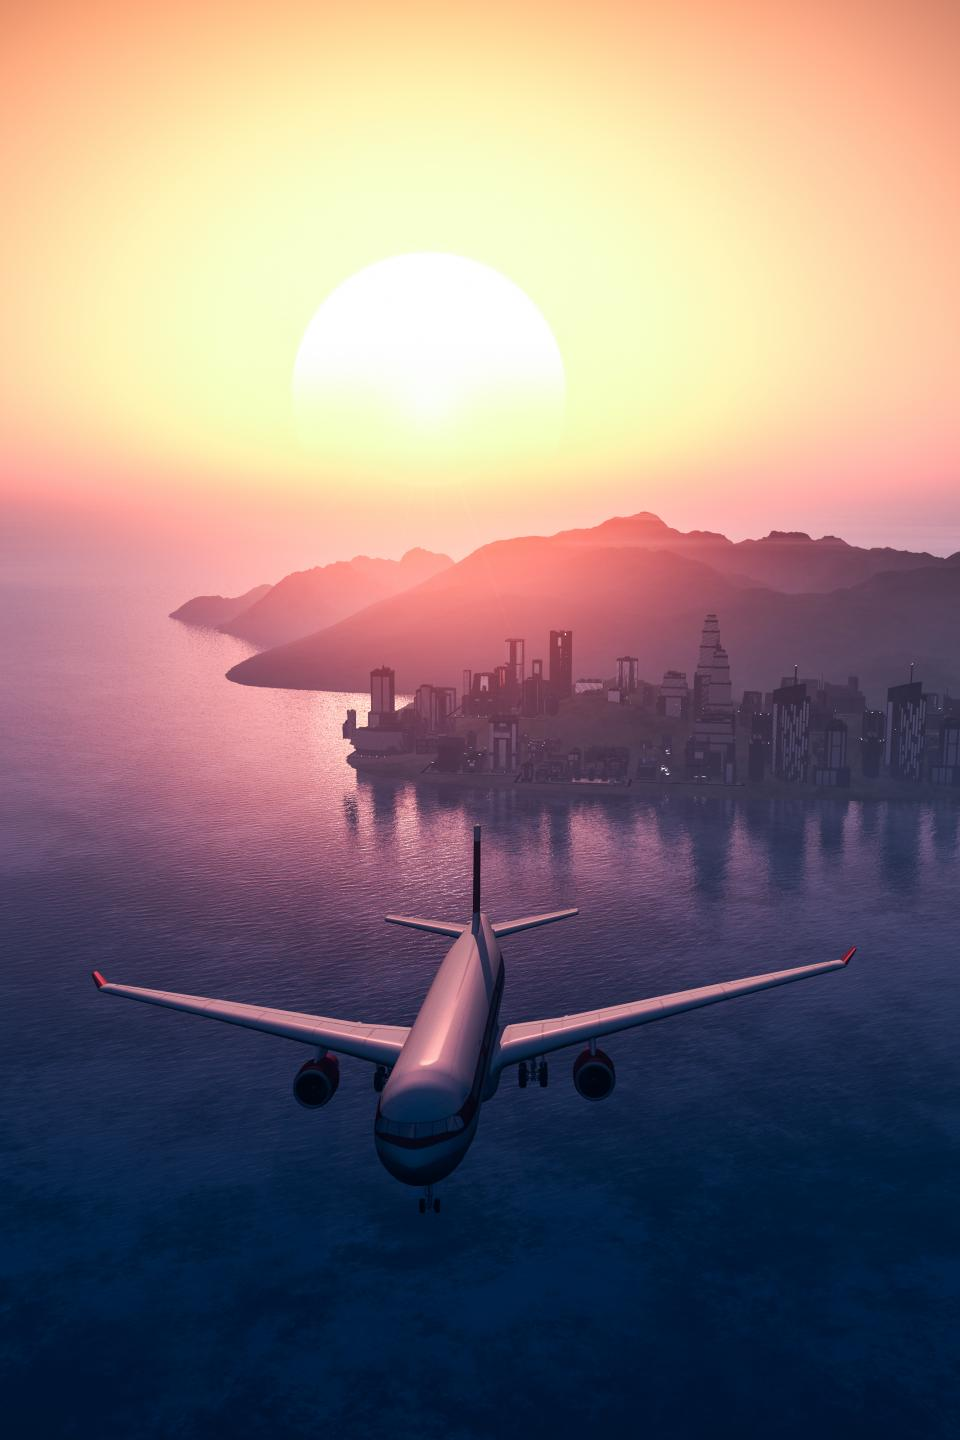 airplane travel adventure plane vacation trip transportation vehicle urban city sunset water ocean sea building establishment